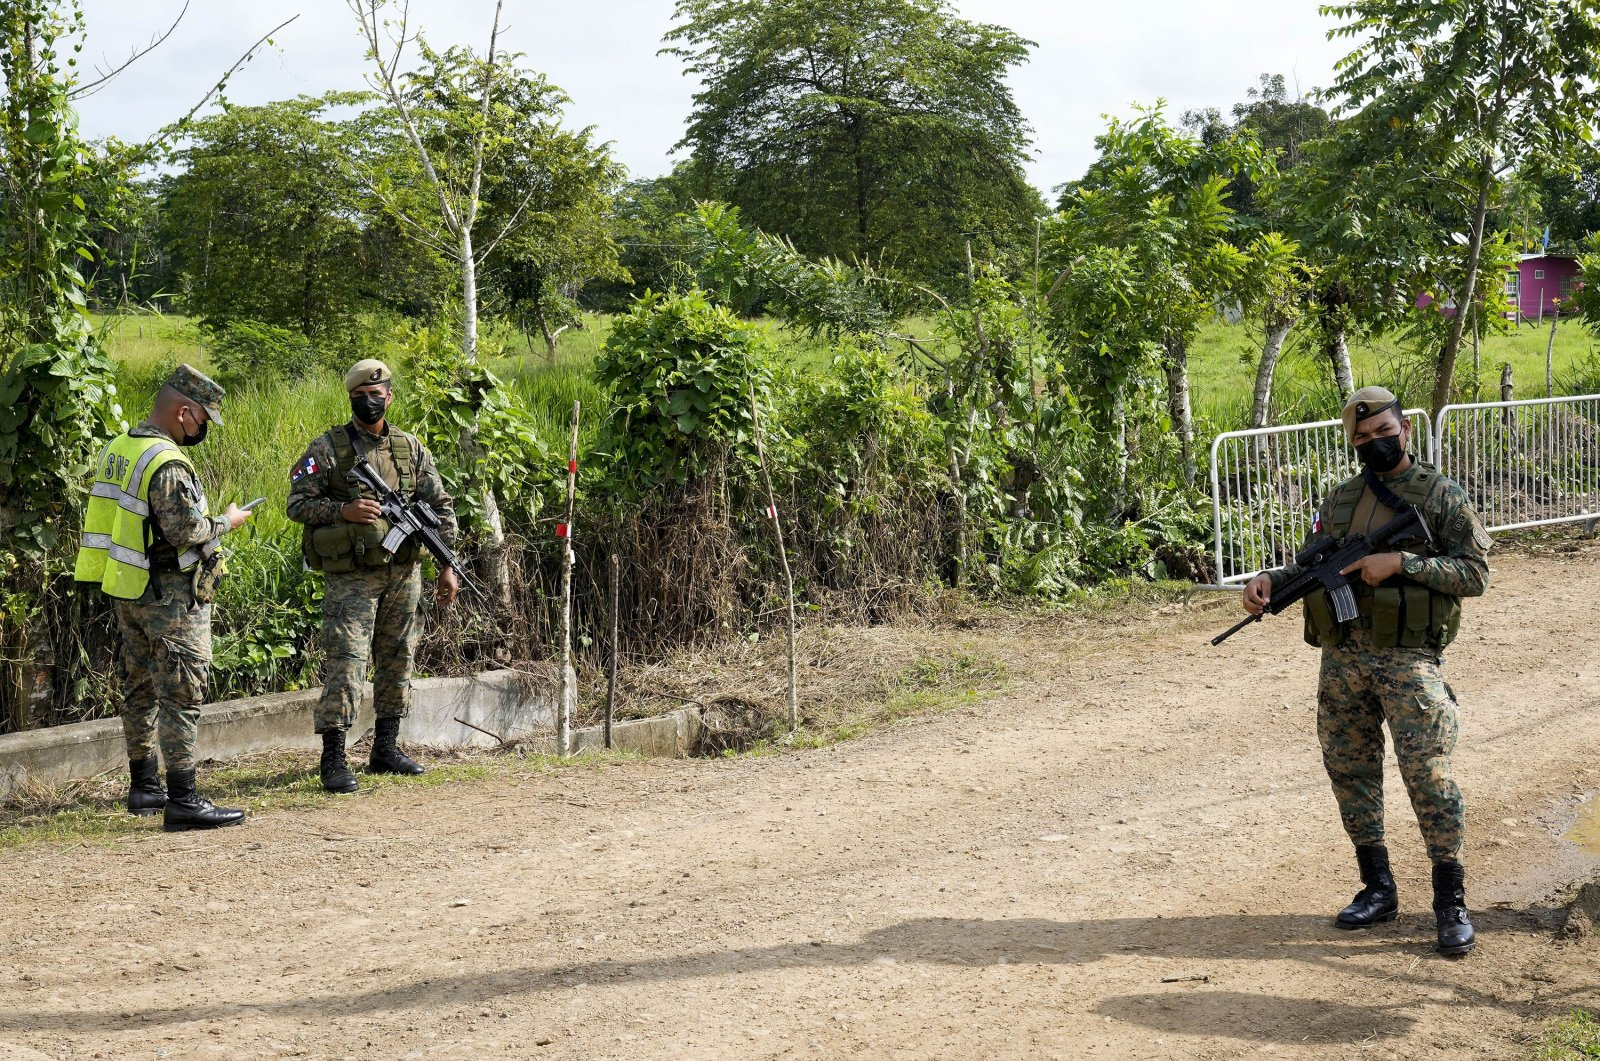 Panamanian border police stand guard outside a migrant camp before the visit of the foreign ministers from Panama and Colombia, in San Vicente, Darien province, Panama, near the border with Colombia, Aug. 6, 2021. (AP Photo)